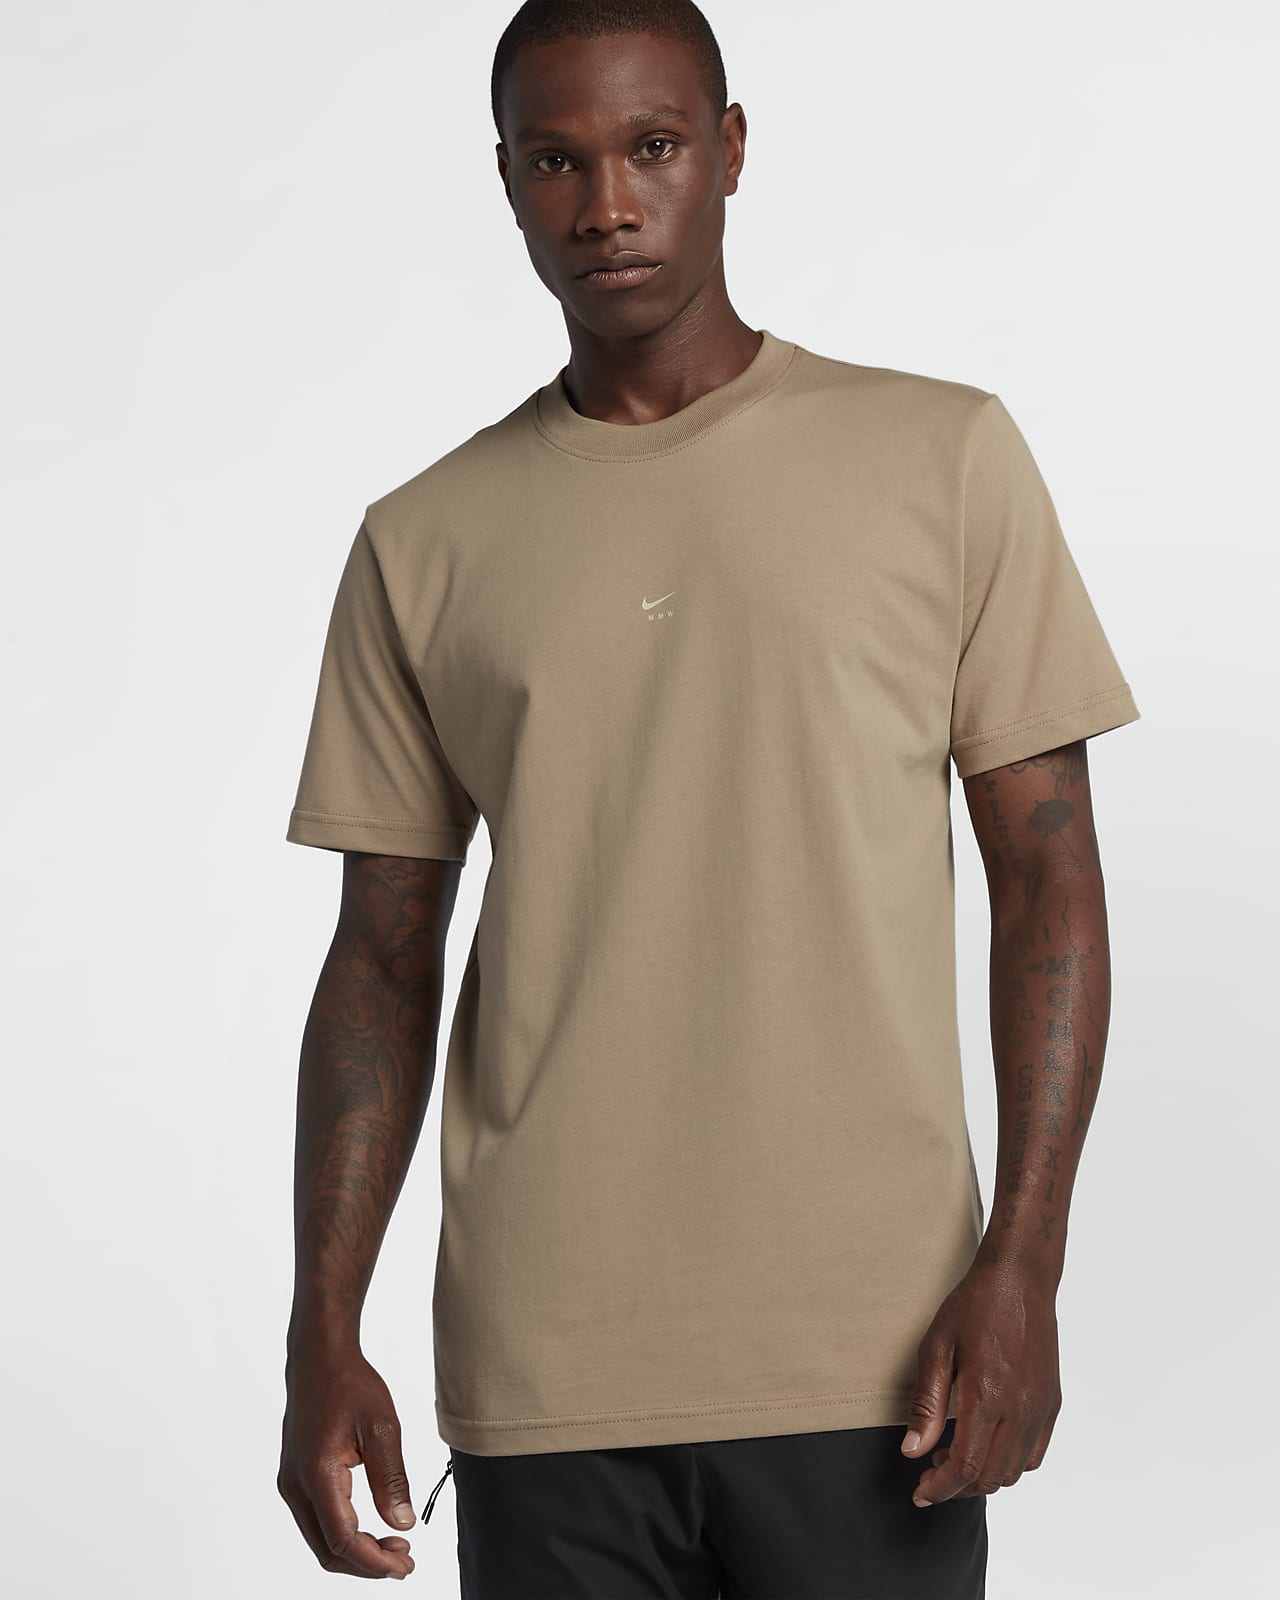 Nike x MMW Graphic Men's T-Shirt